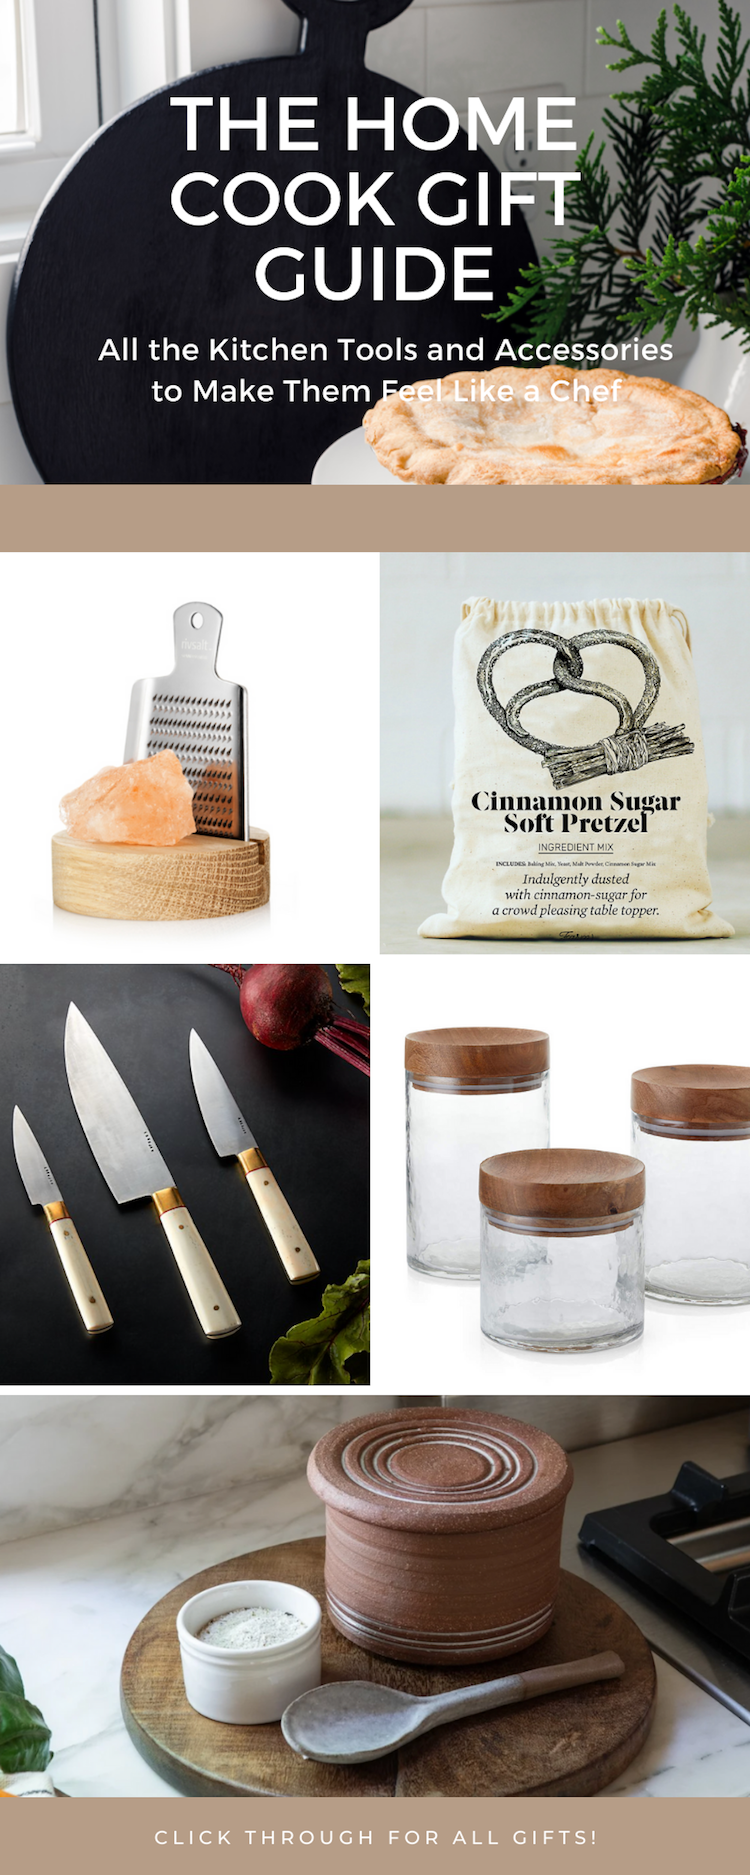 Pinterest Home Cook Gift Guide